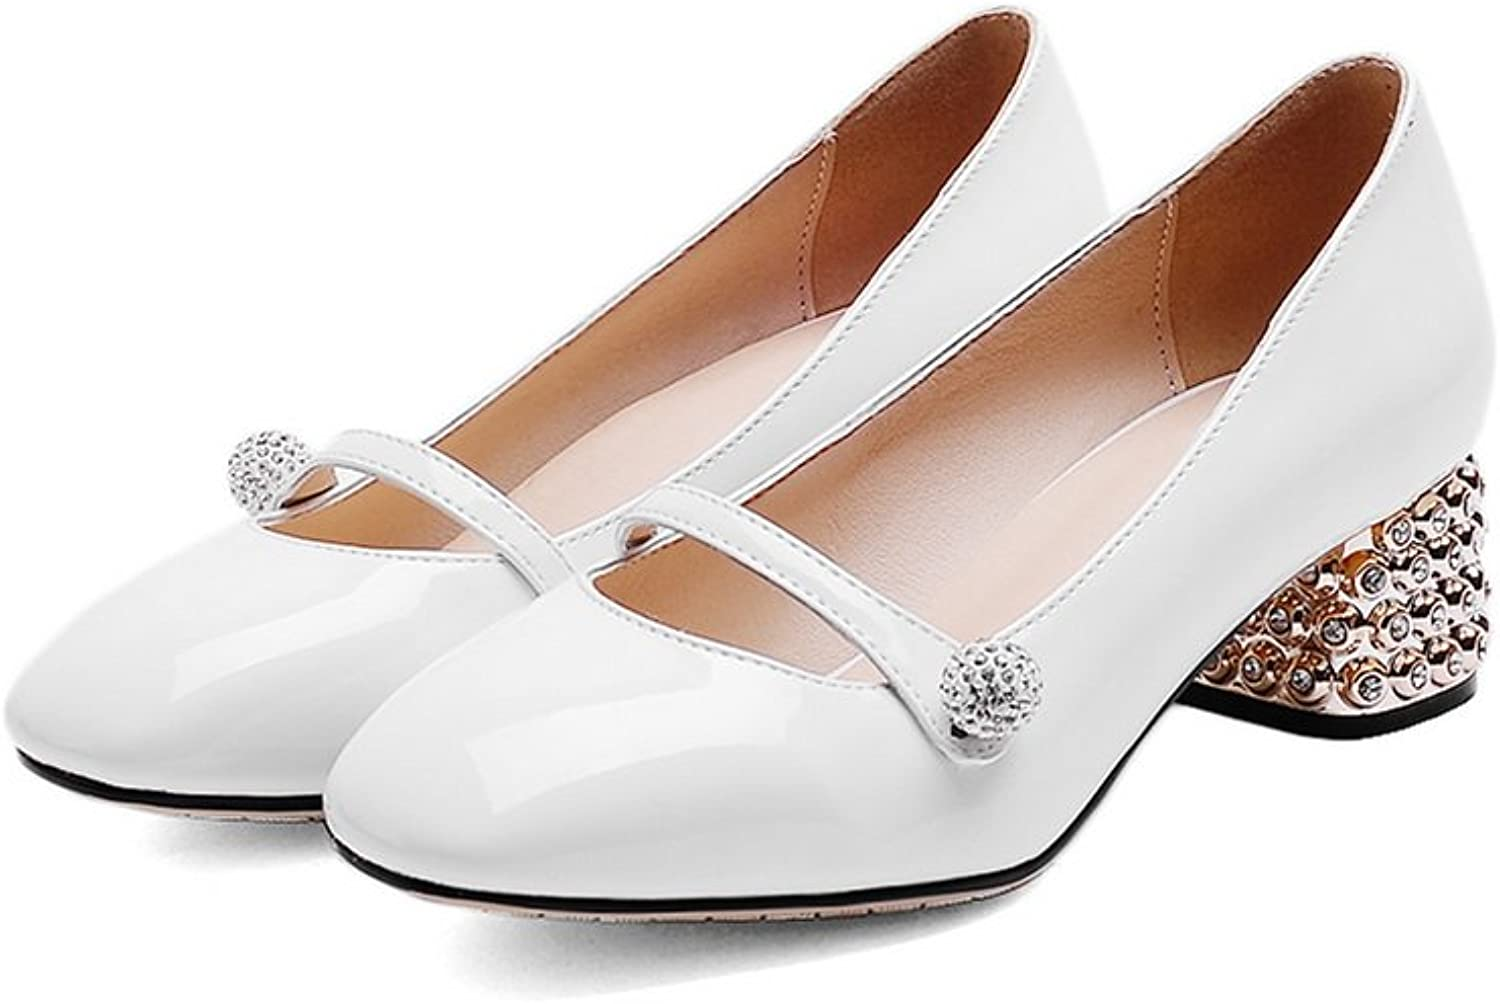 AdeeSu Ladies Glass Diamond Solid Square-Toe Patent Leather Pumps shoes